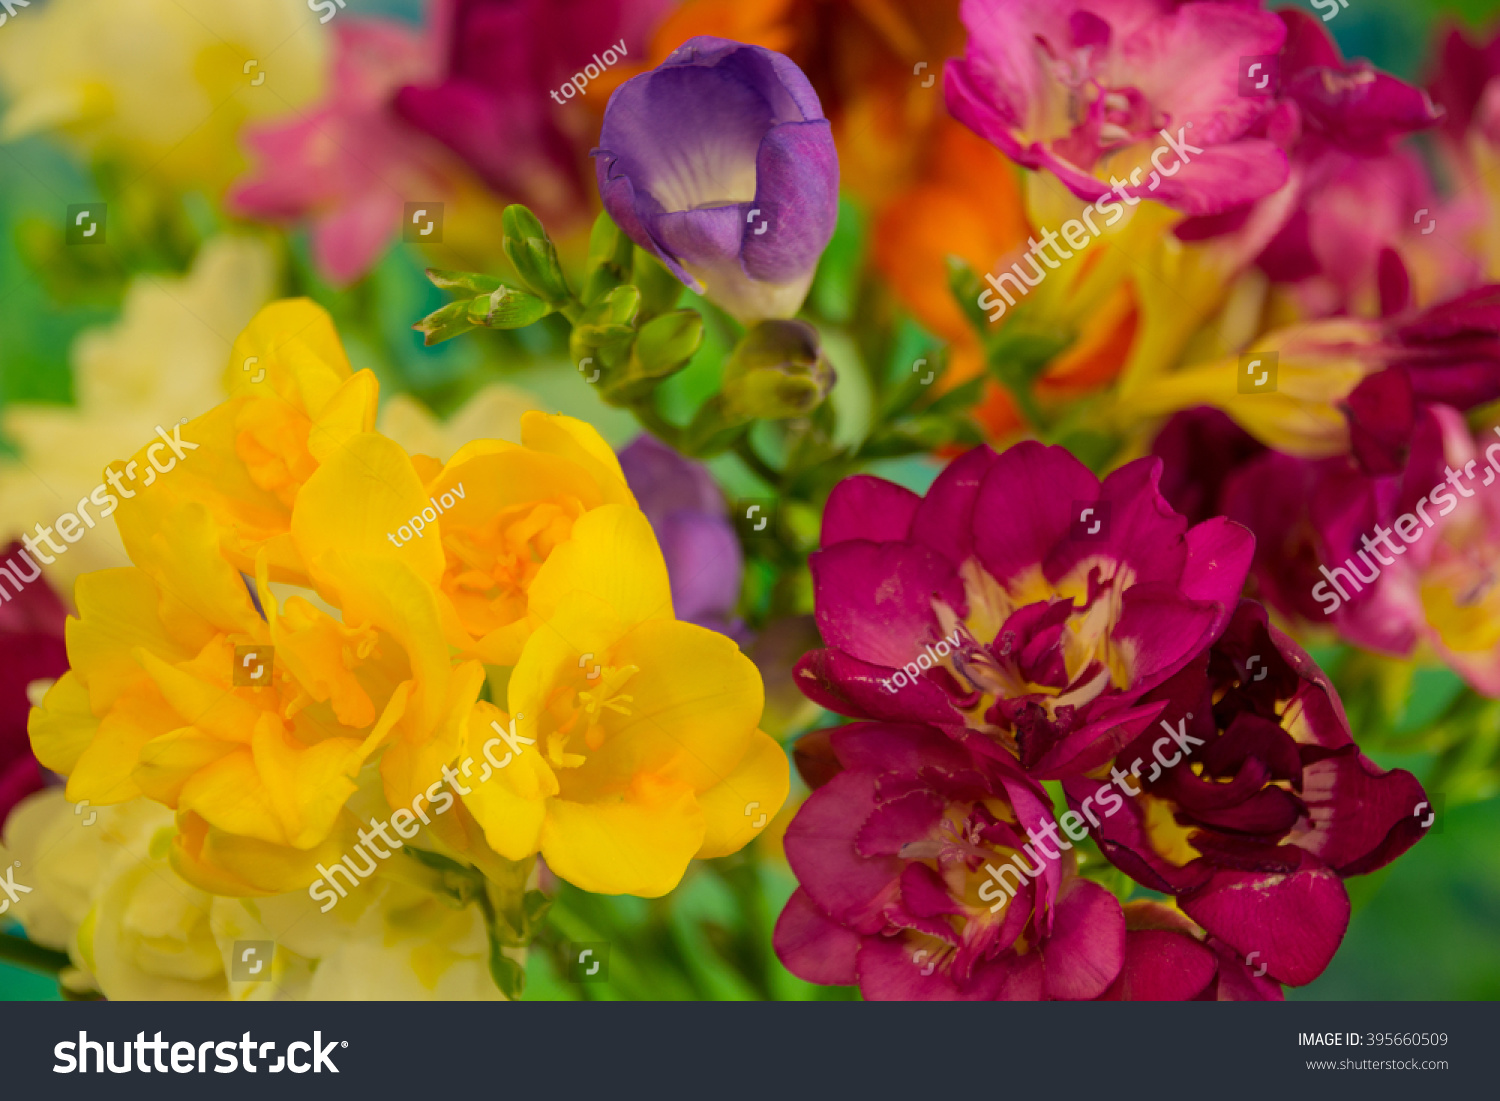 Freesia flowers on bright background freesia stock photo 395660509 freesia flowers on bright background freesia is a genus of herbaceous perennial flowering plants in mightylinksfo